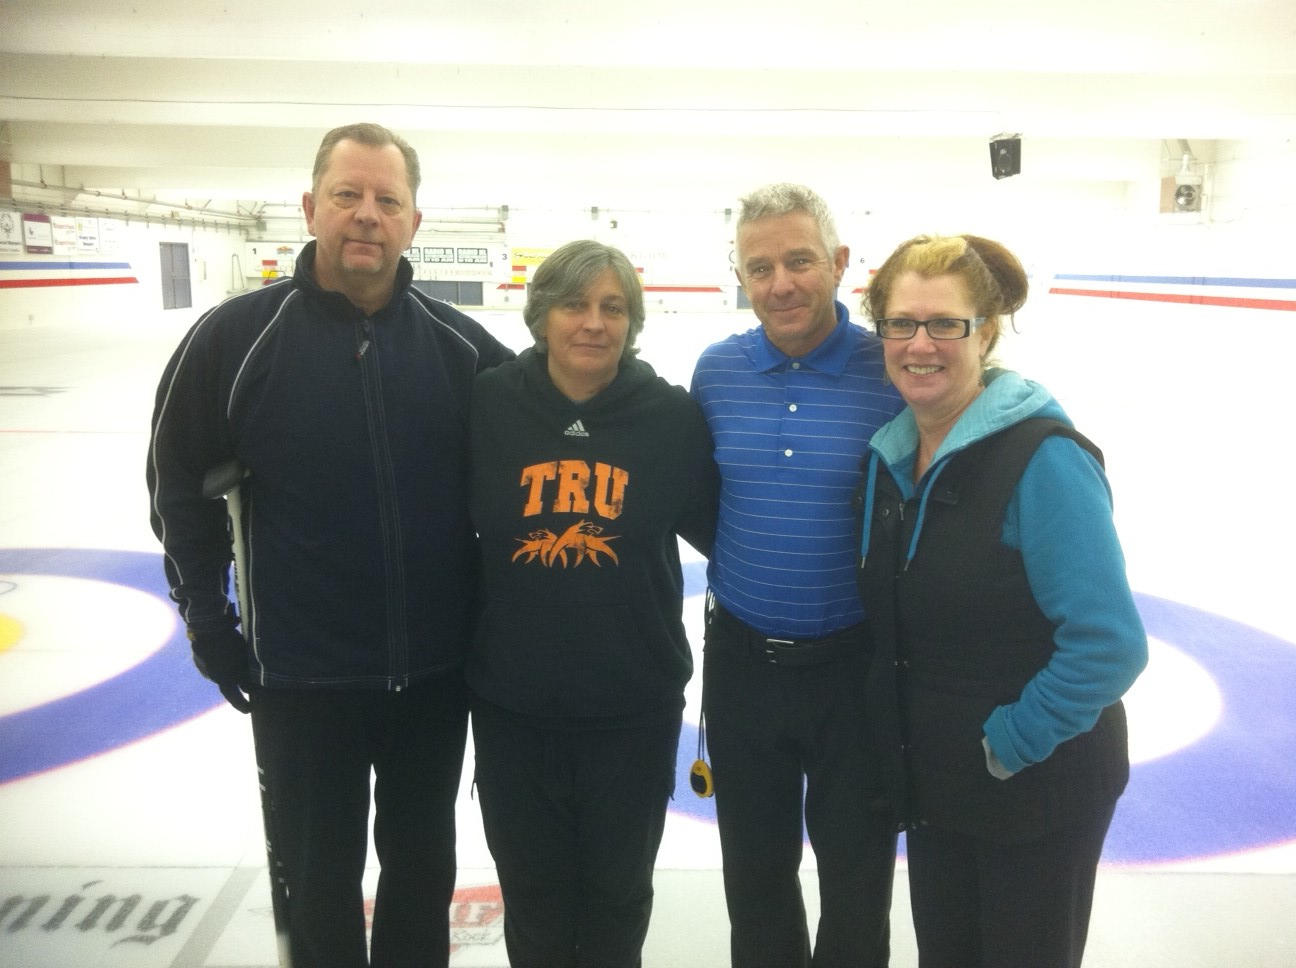 MICC 2015 Funspiel a HUGE SUCCESS!!!!